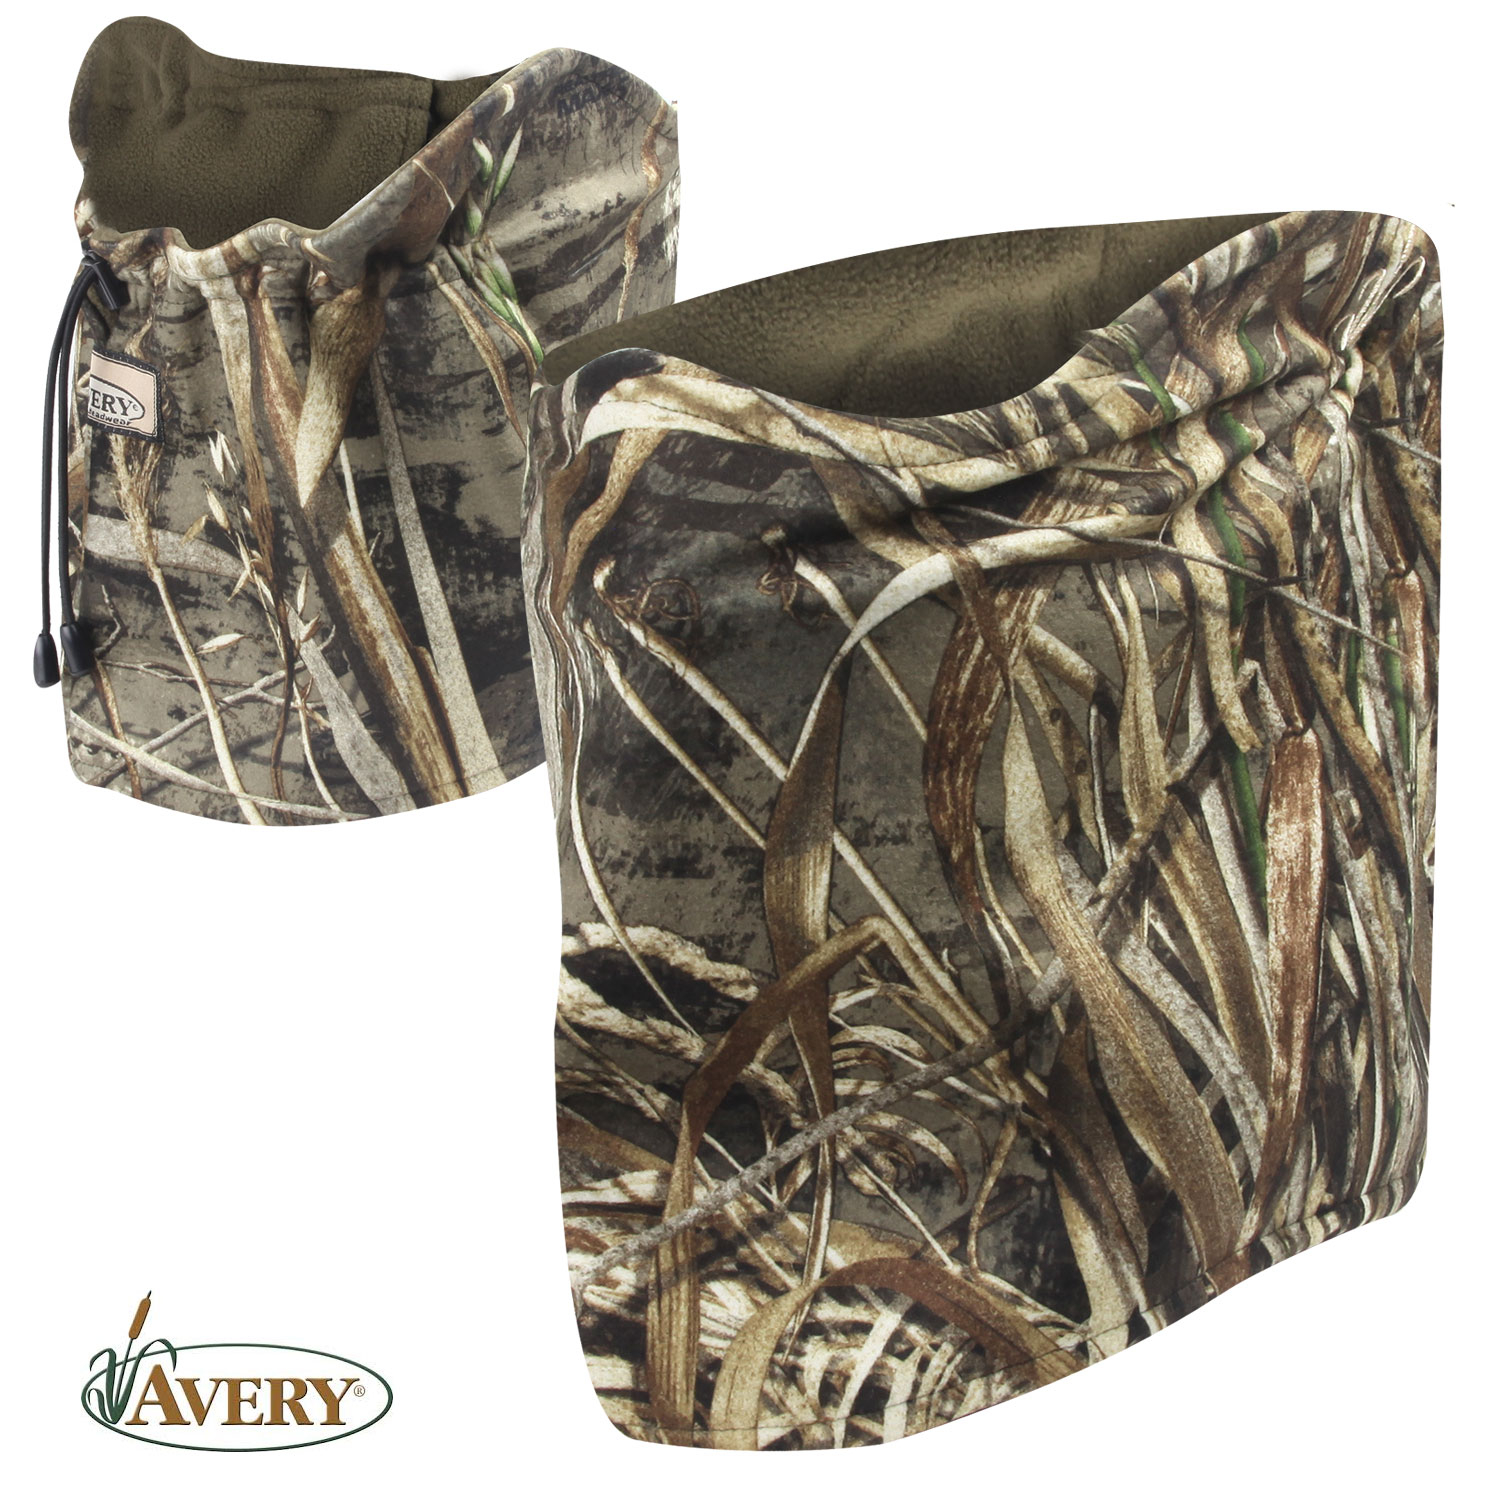 Avery Outdoors Fleece Neck Gaiter RTMX 5